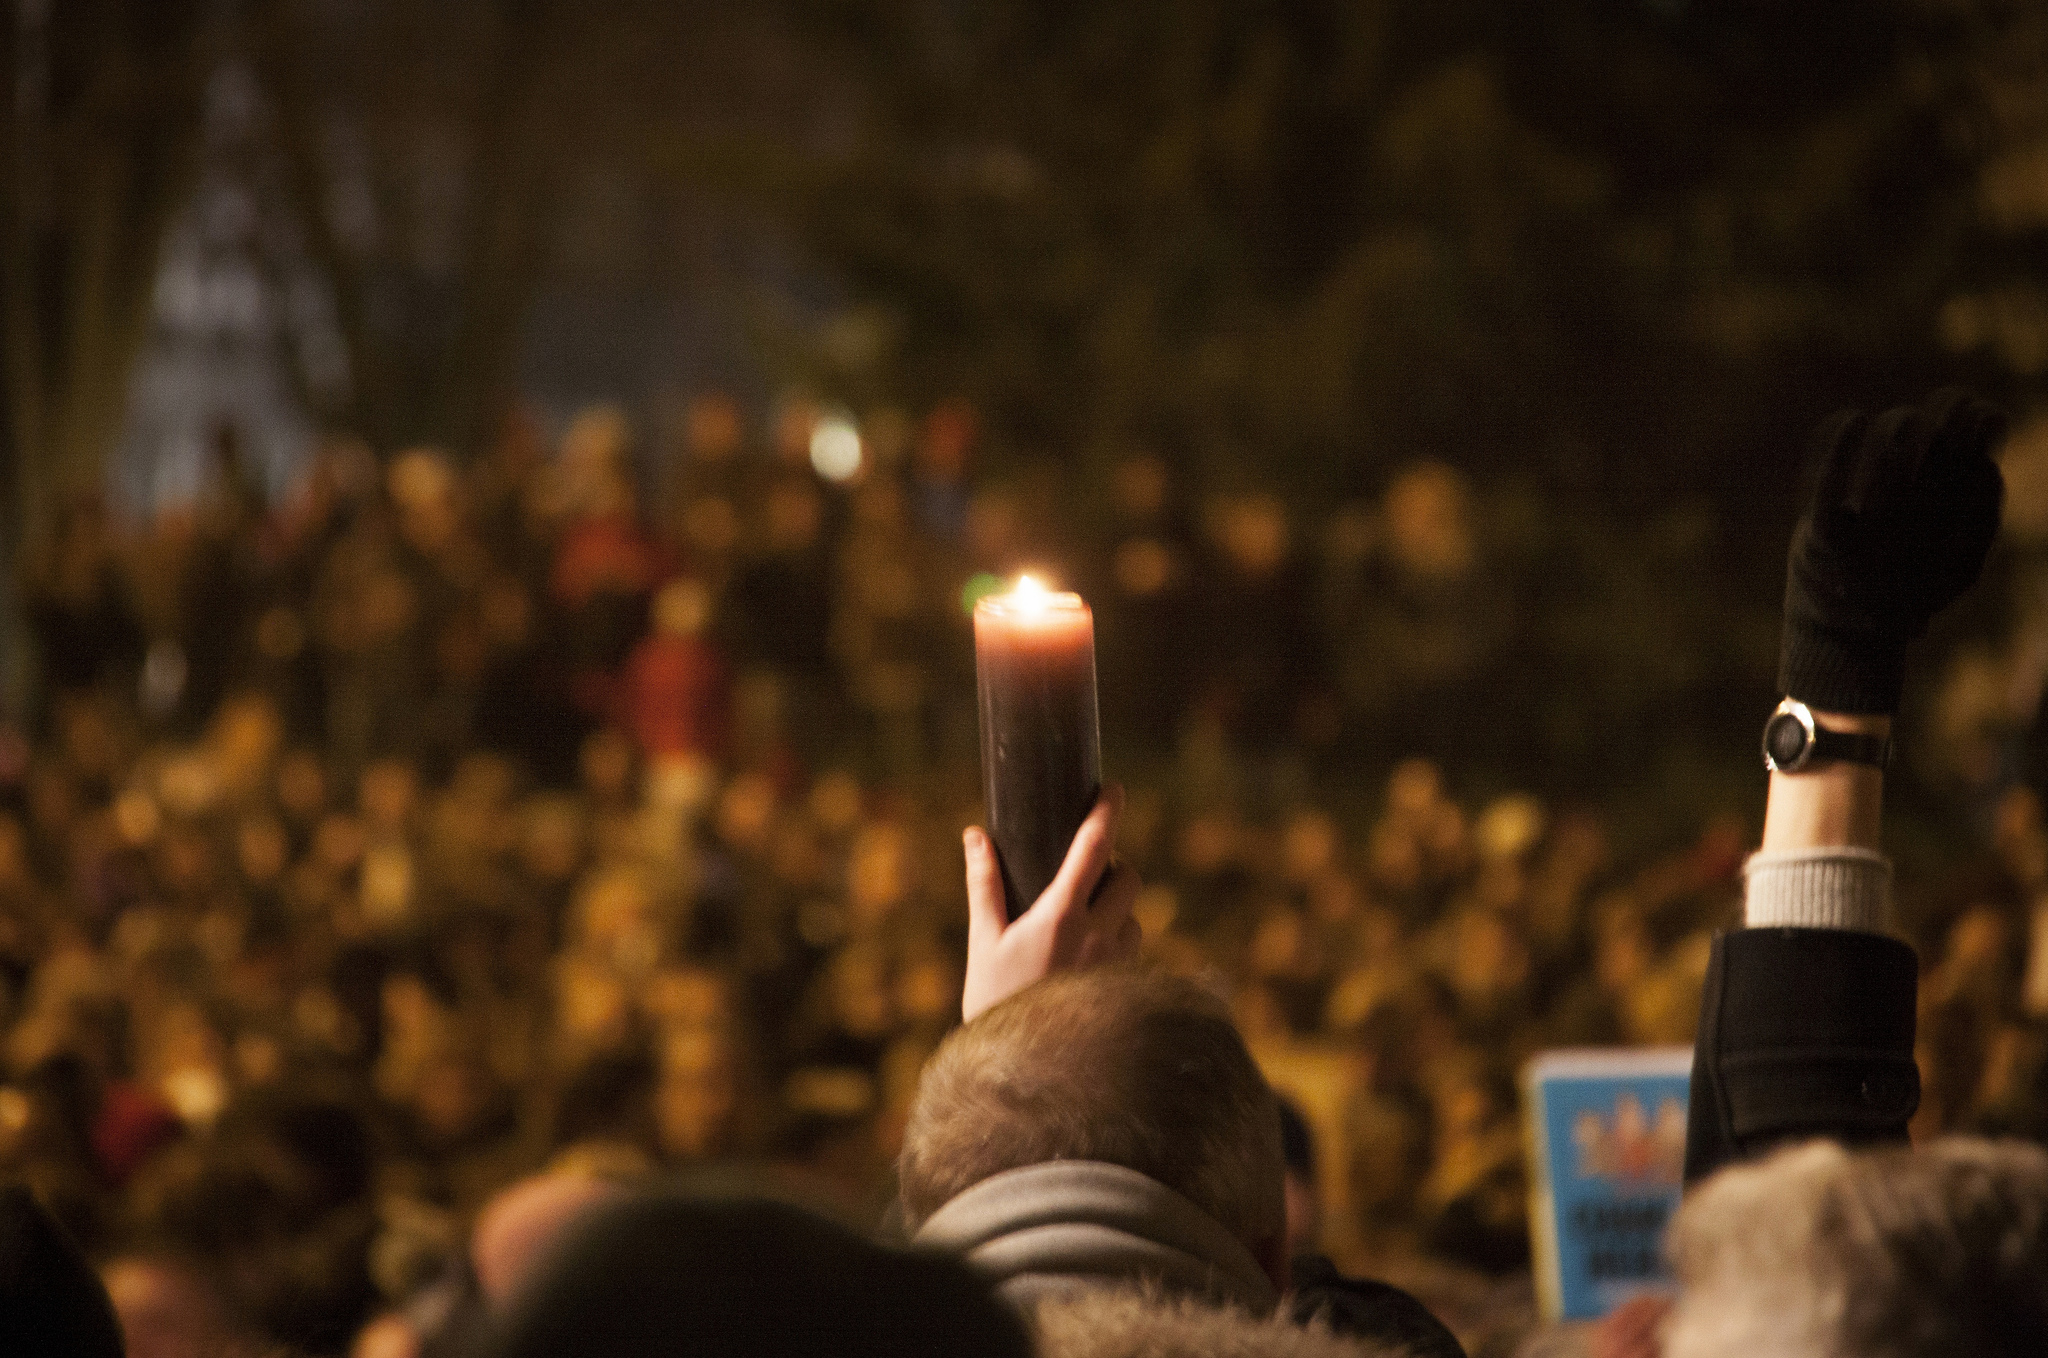 Is It Wrong to Mourn Paris More Deeply Than Beirut?